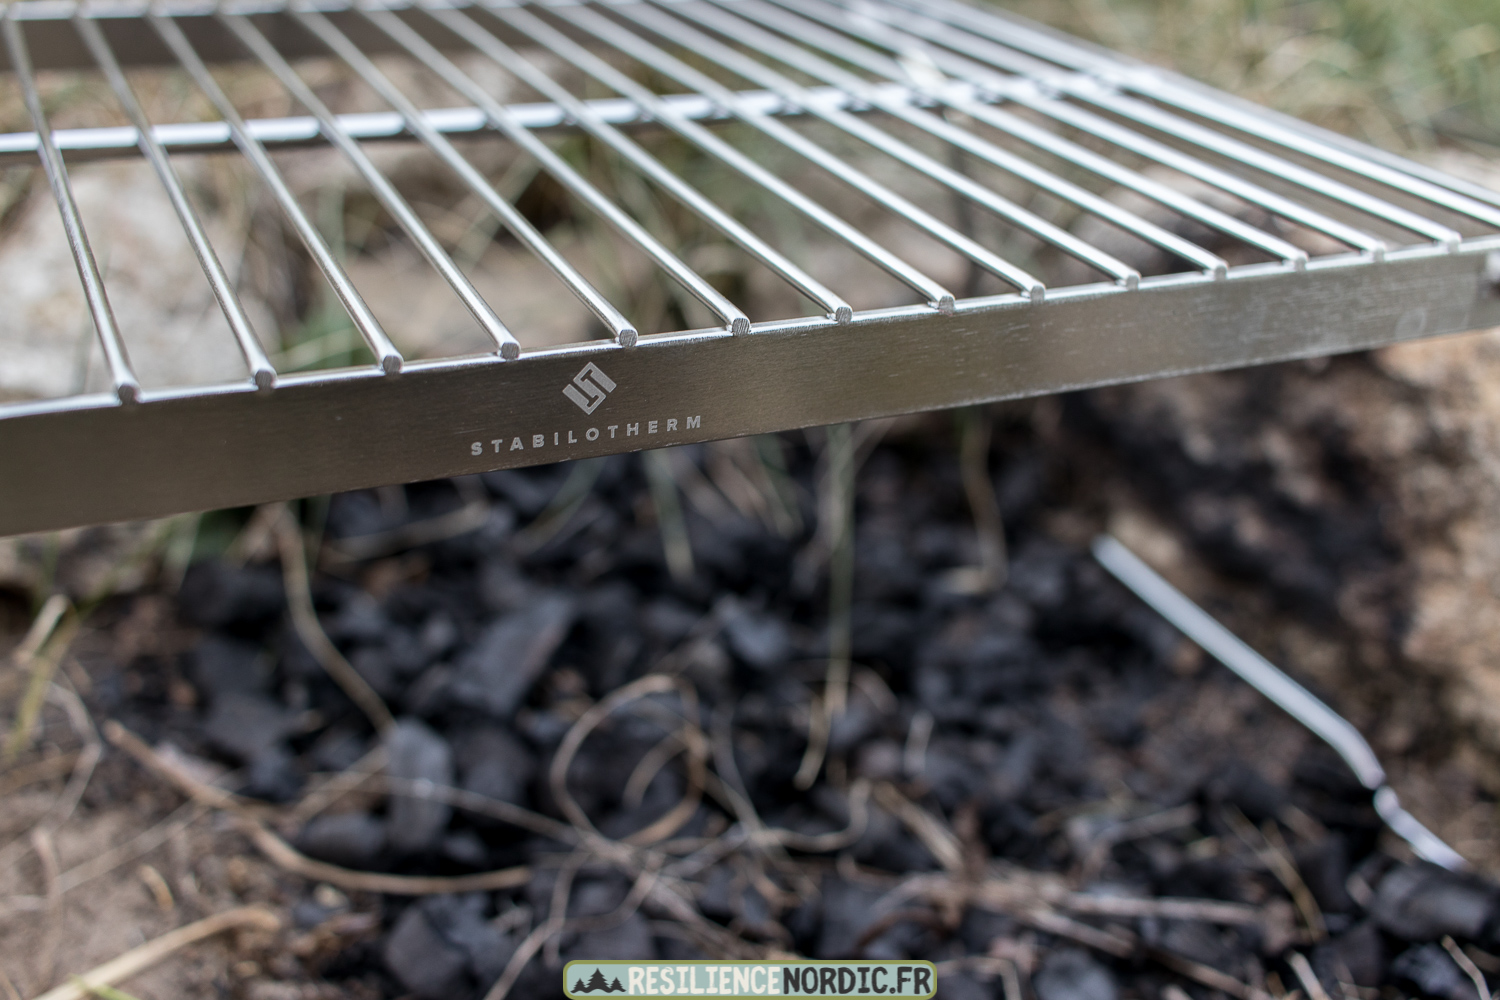 Stabilotherm BBQ Grid Grille pliable Medium